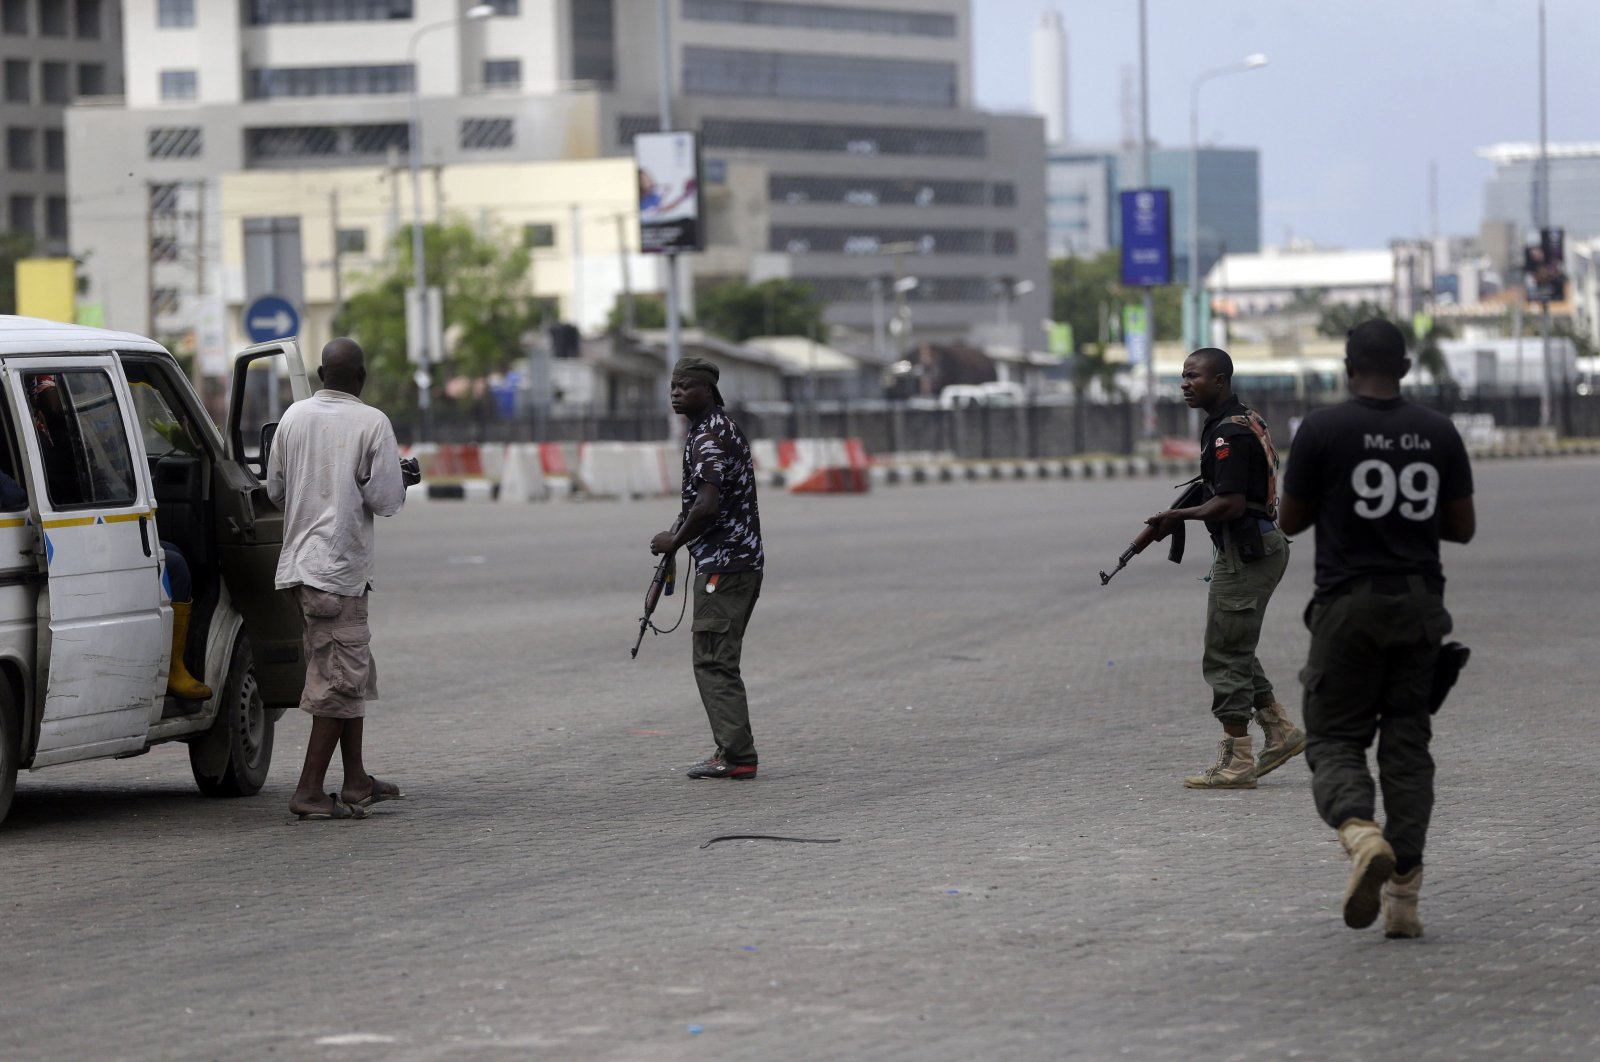 Police officers stop and search a bus carrying passengers around the Lekki toll gate in Lagos, Nigeria, Oct. 23, 2020. (AP Photo)